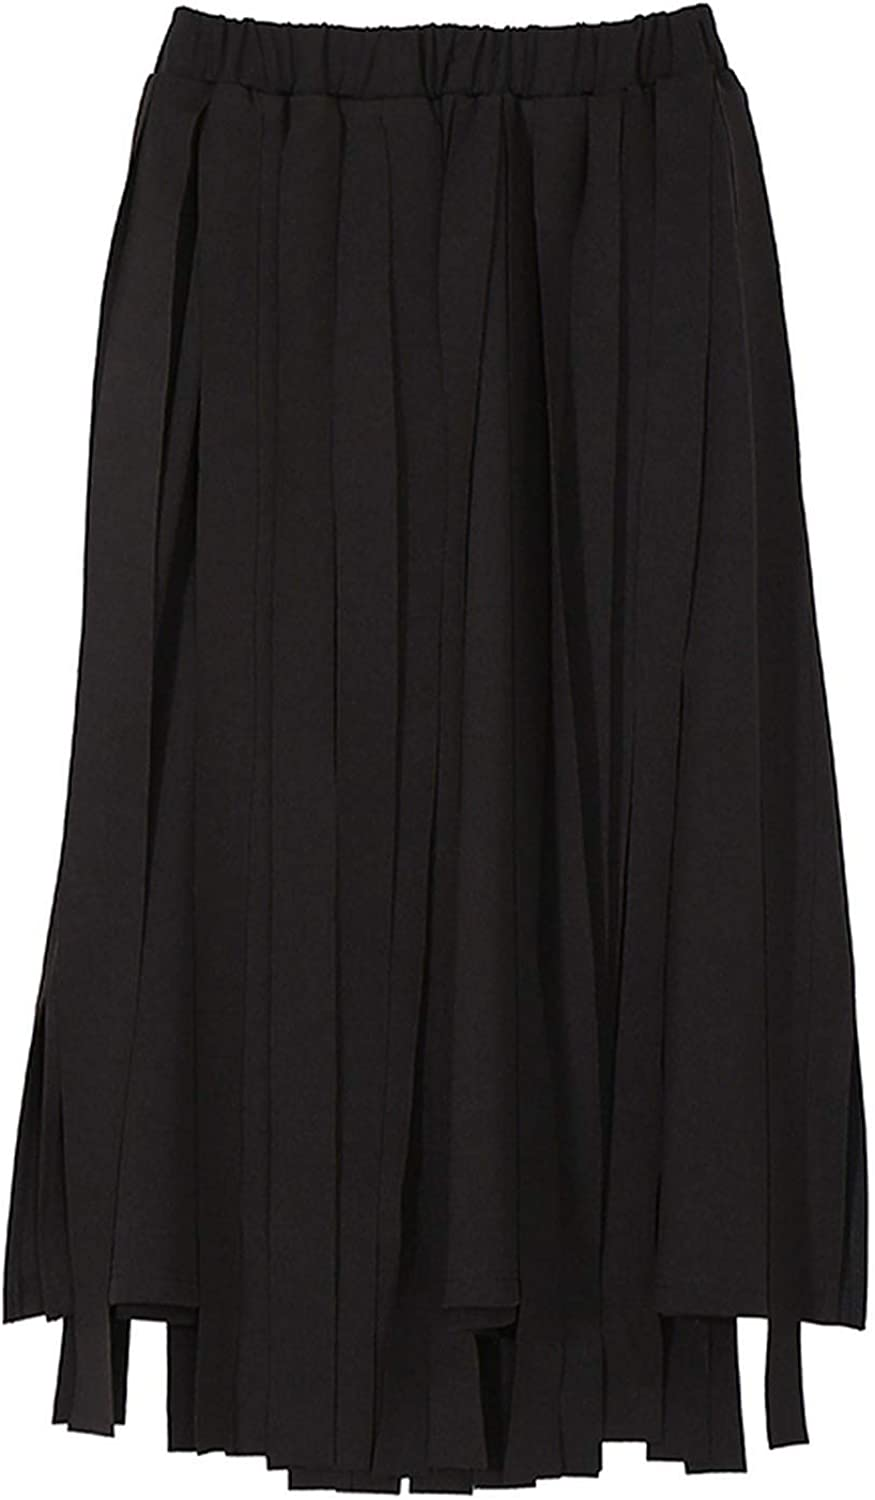 AllAboutUs Women Black bluee ALine Skirts with Many Tapes Elastic Waist Mid Calf Length Skirts 3833